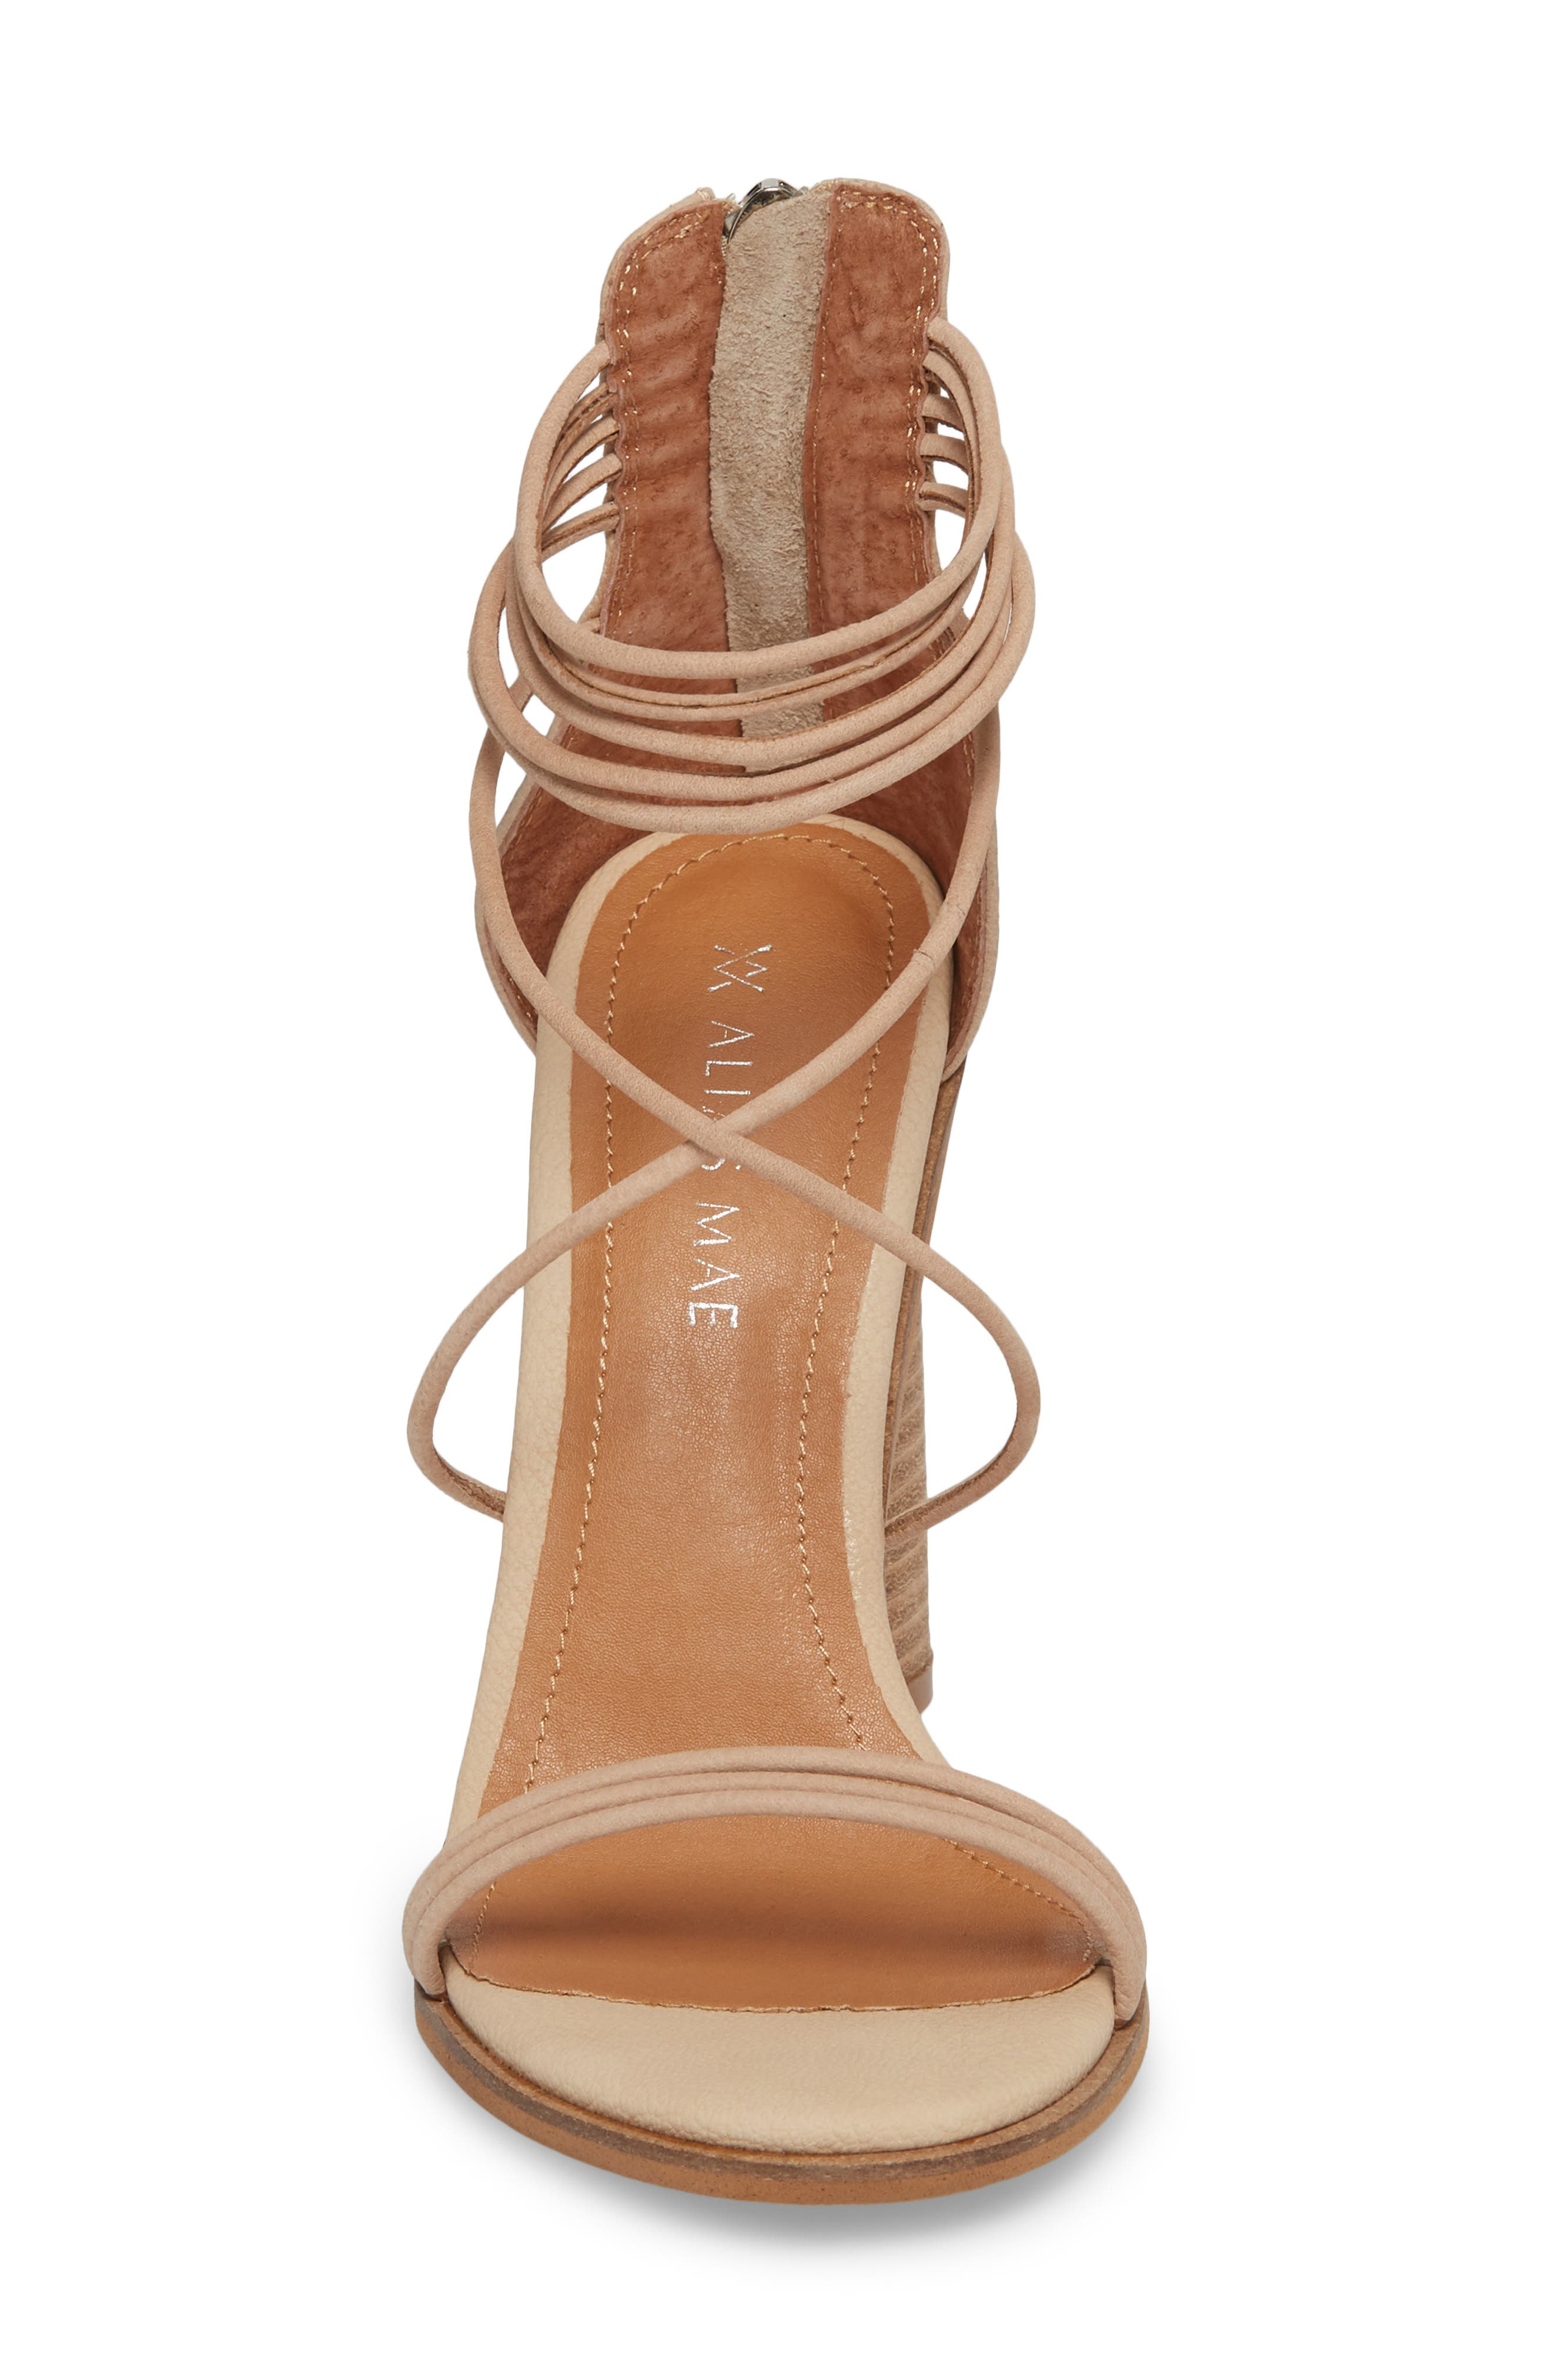 Aflux Tall Strappy Sandal,                             Alternate thumbnail 4, color,                             Natural Leather